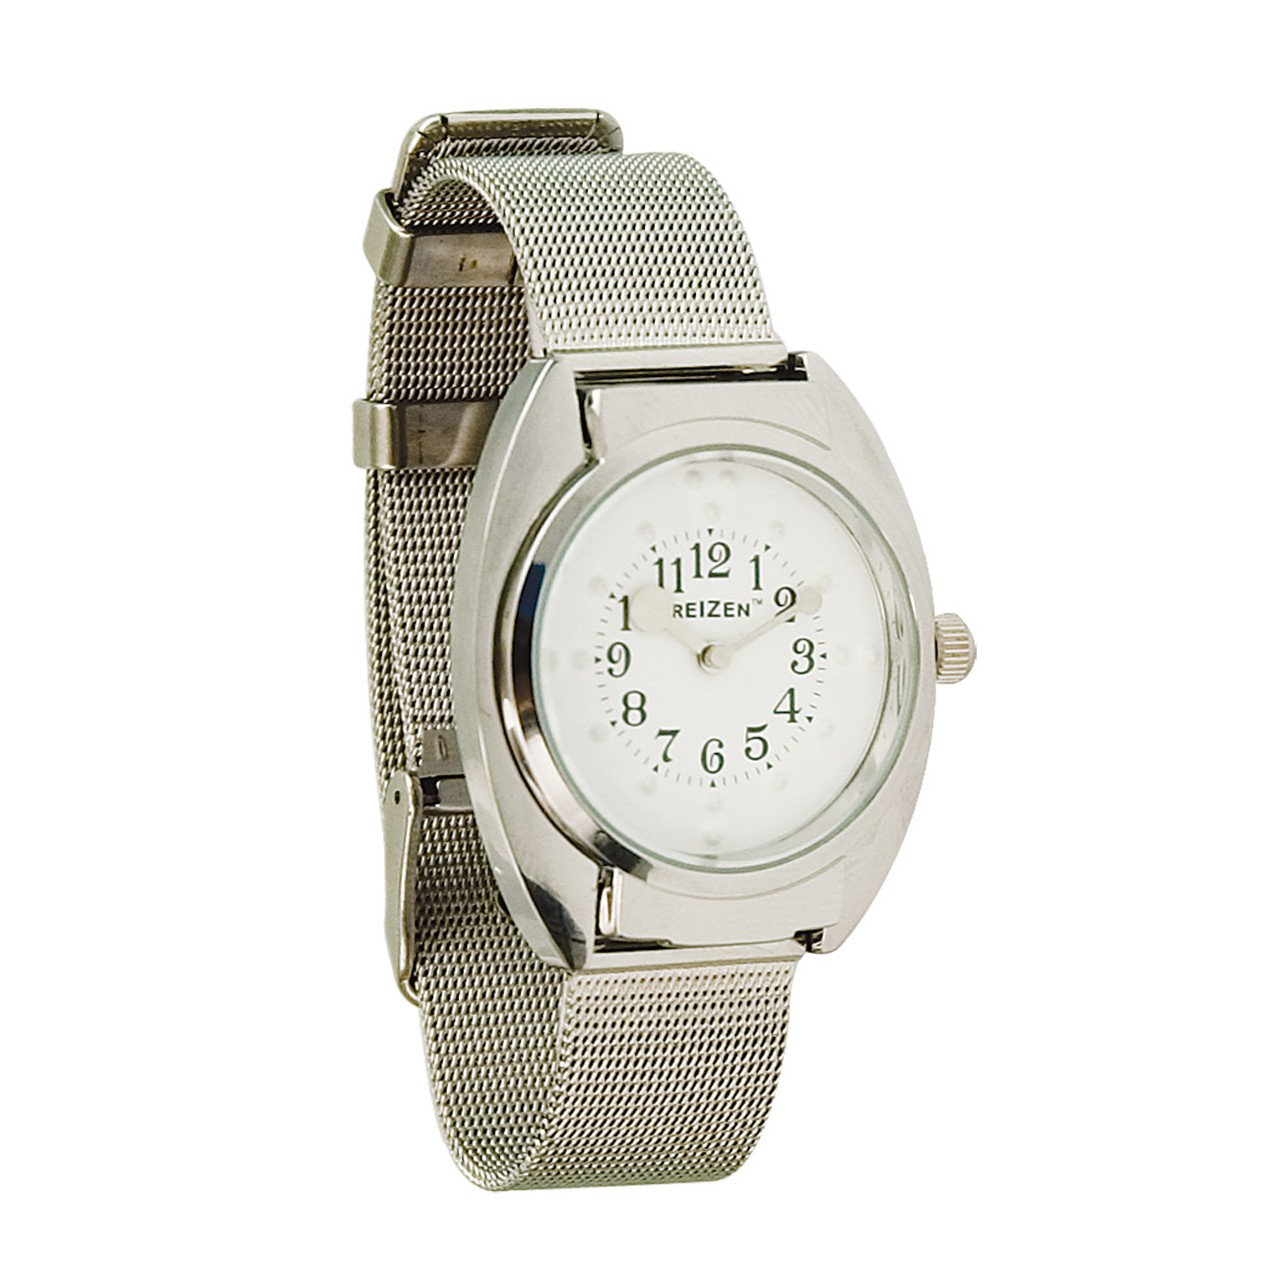 Unisex Braille Watch- Chrome- Steel Mesh Band- White Dial